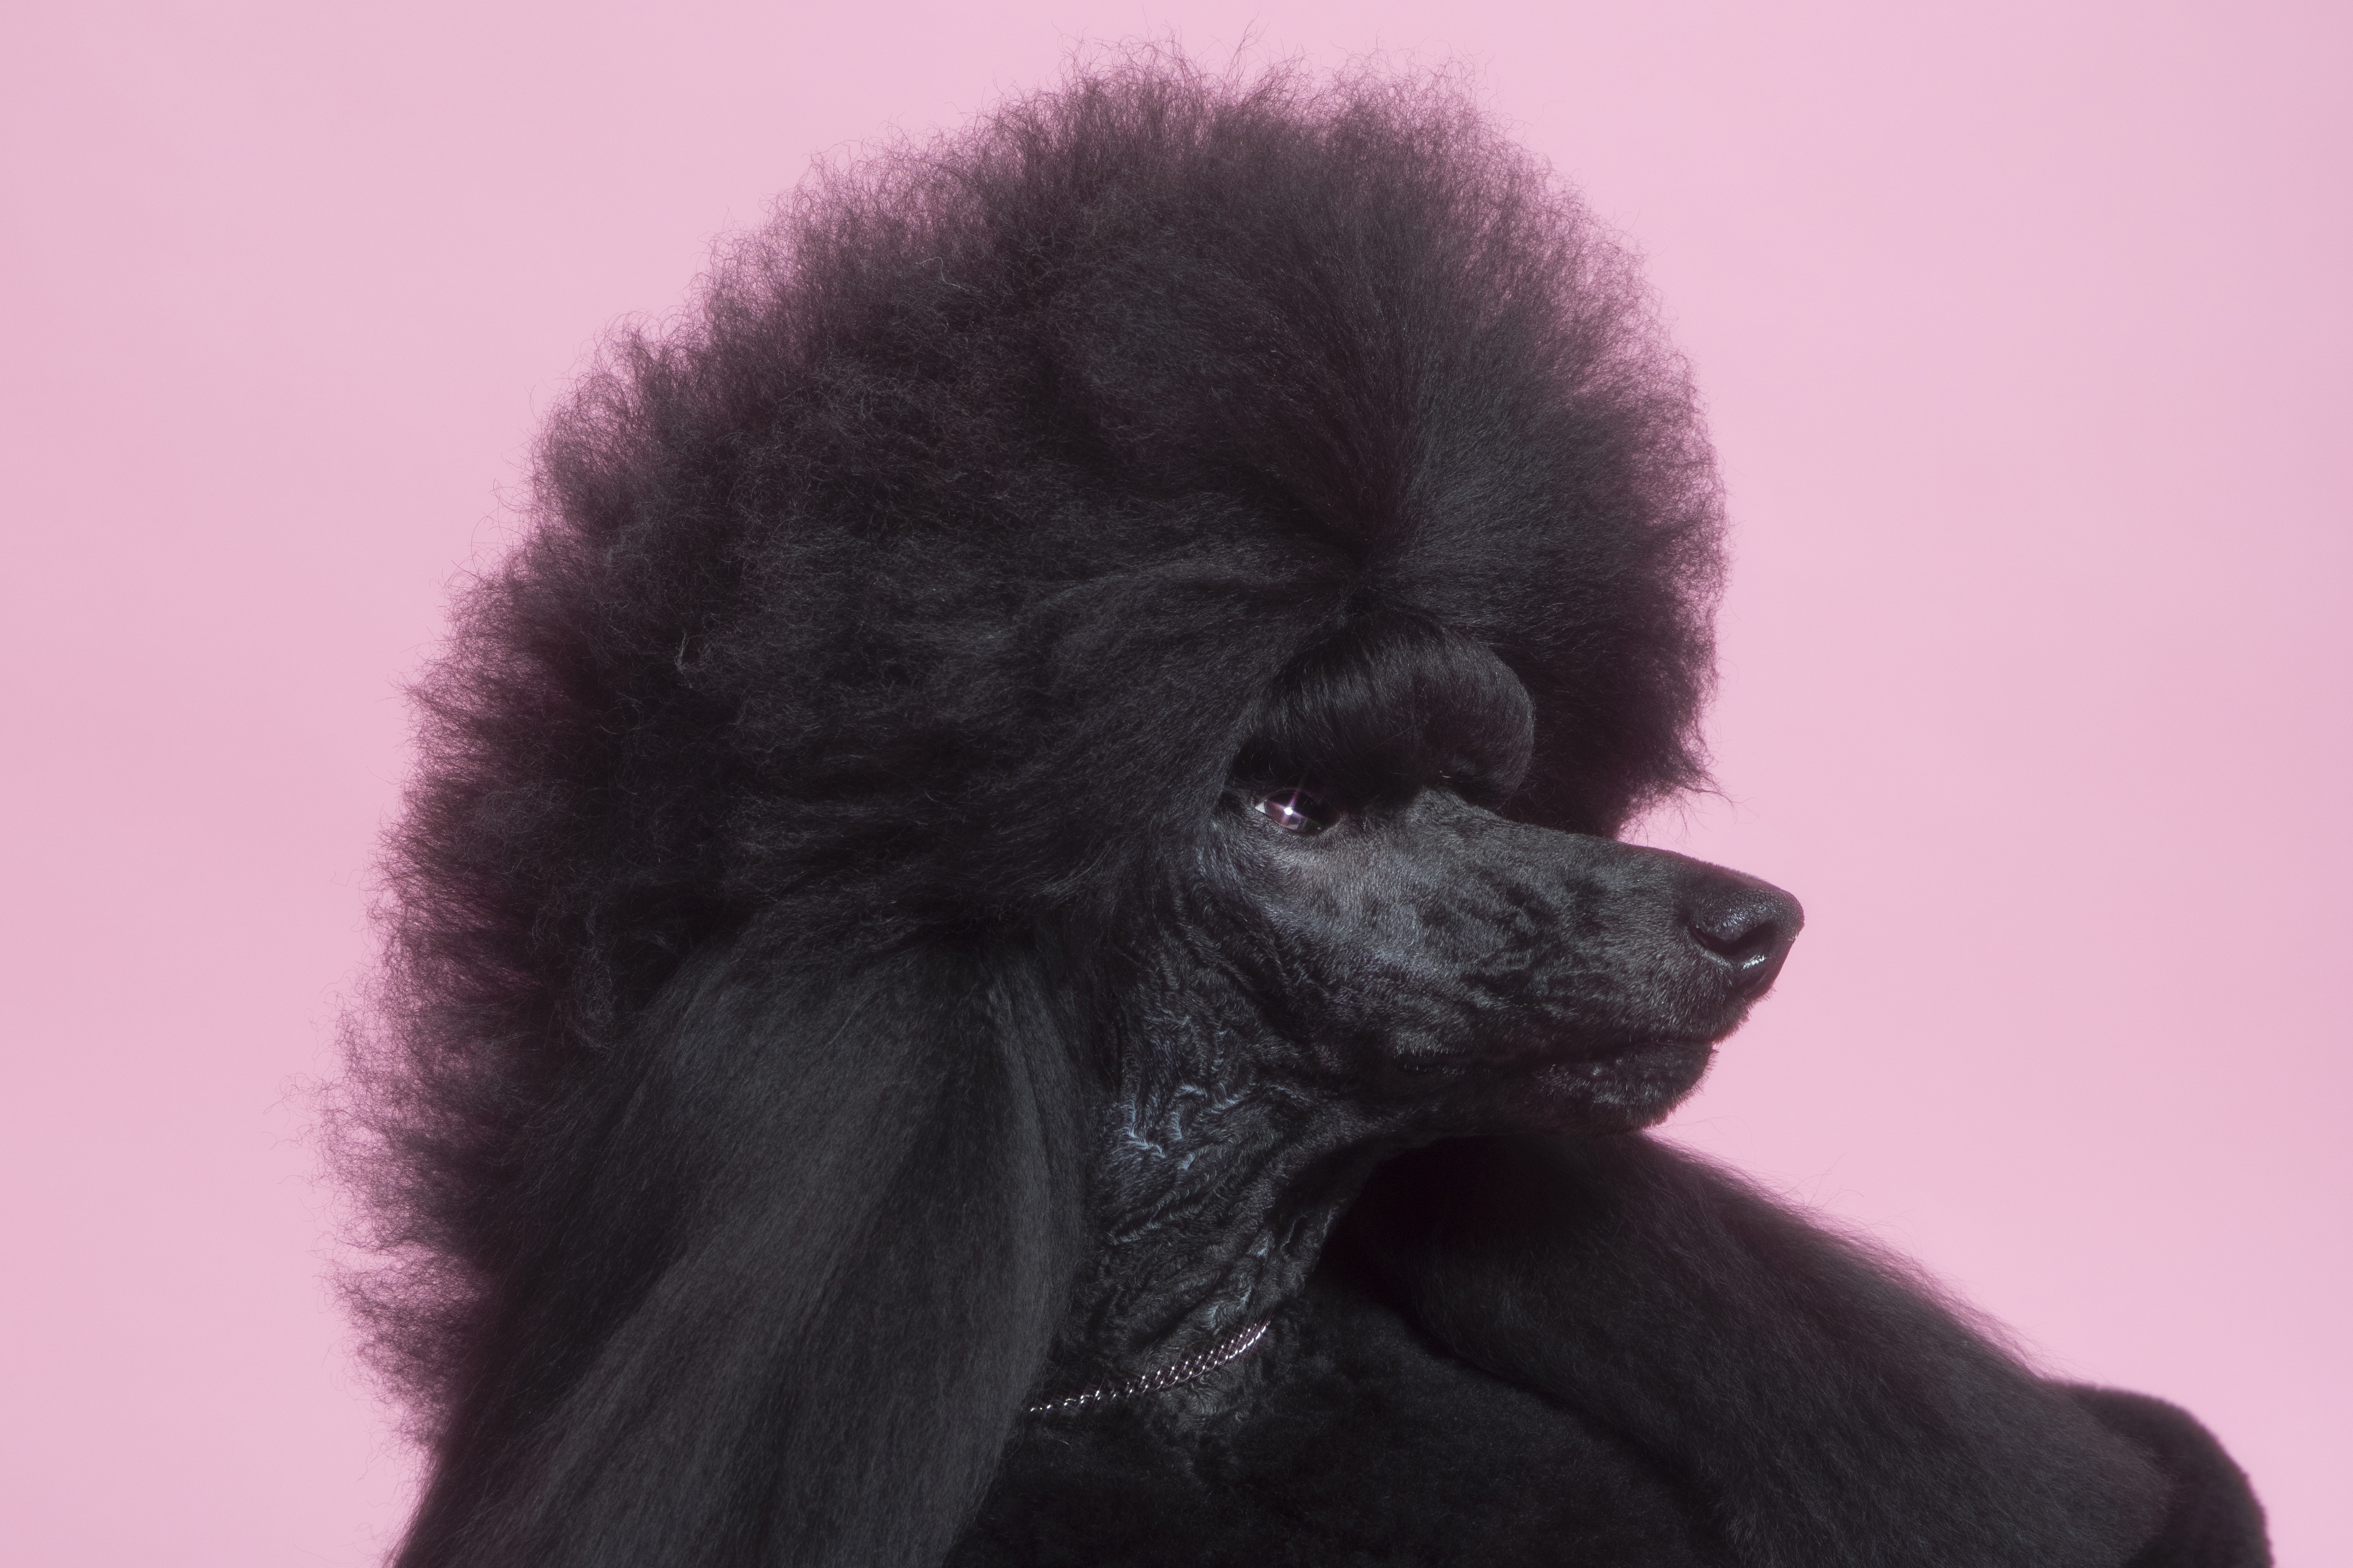 Siba the Standard Poodle, who won the 2020 Westminster Dog Show, poses for a portrait at the TIME studio on Feb. 12